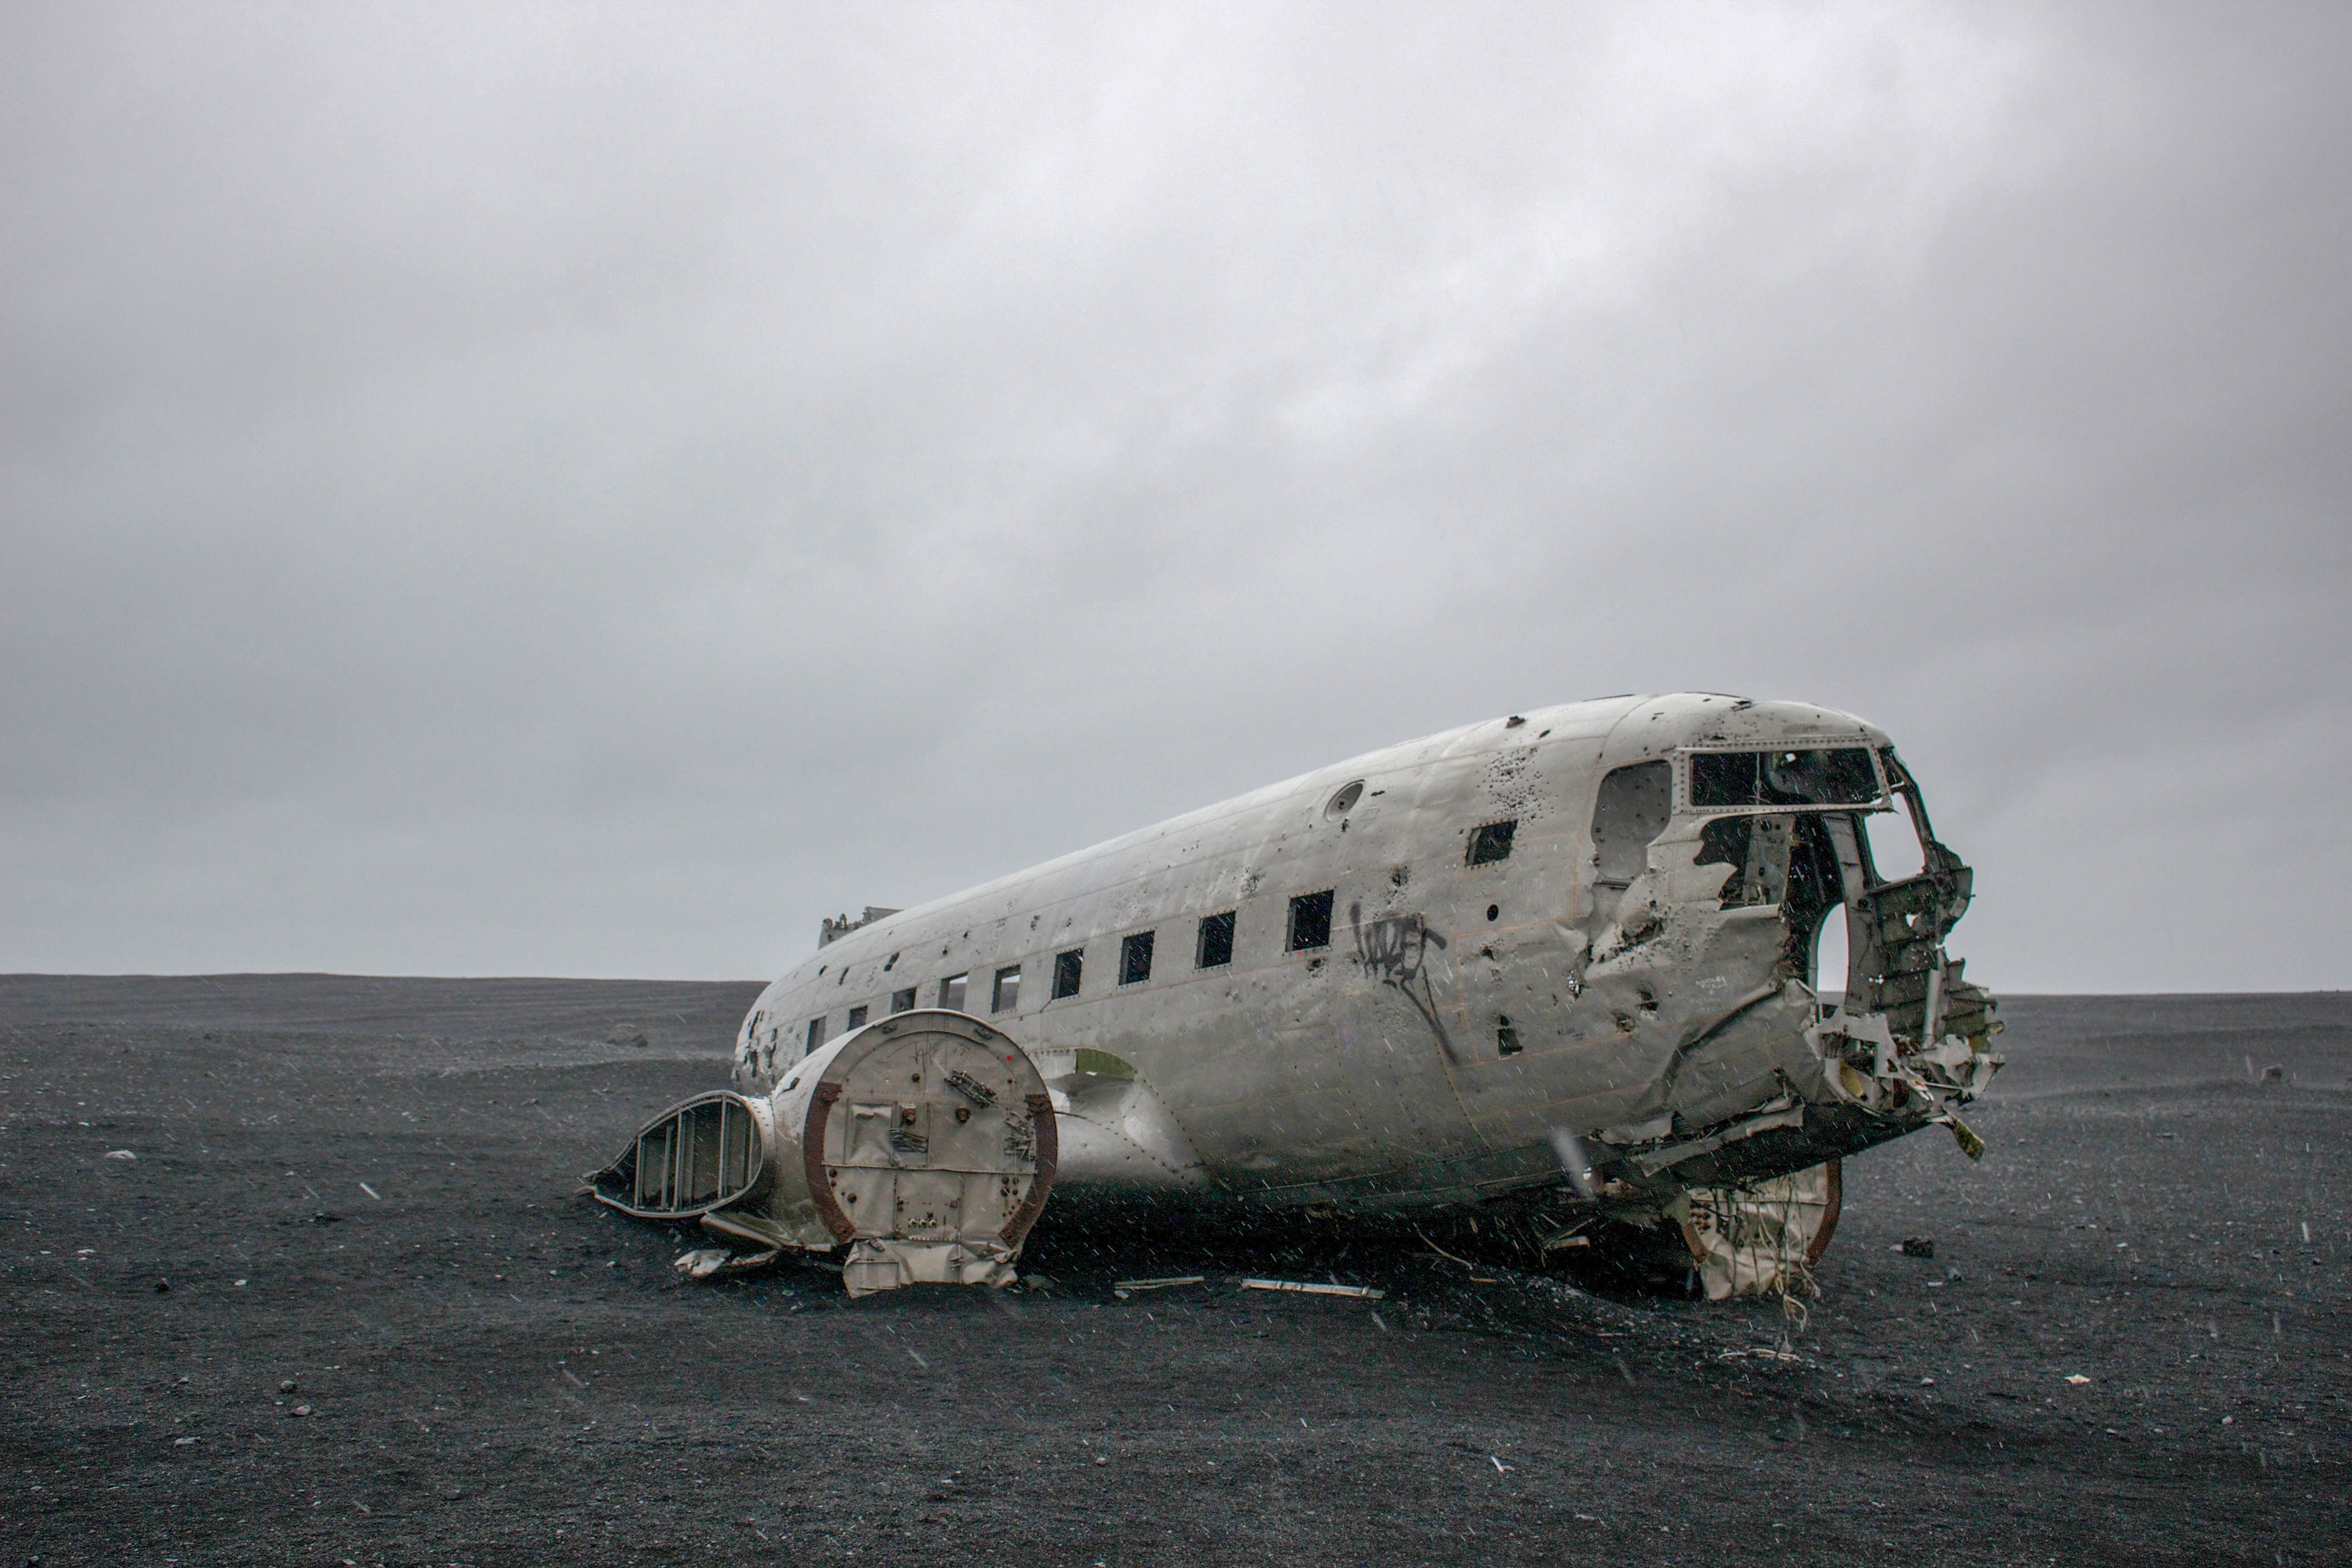 wrecked airplane